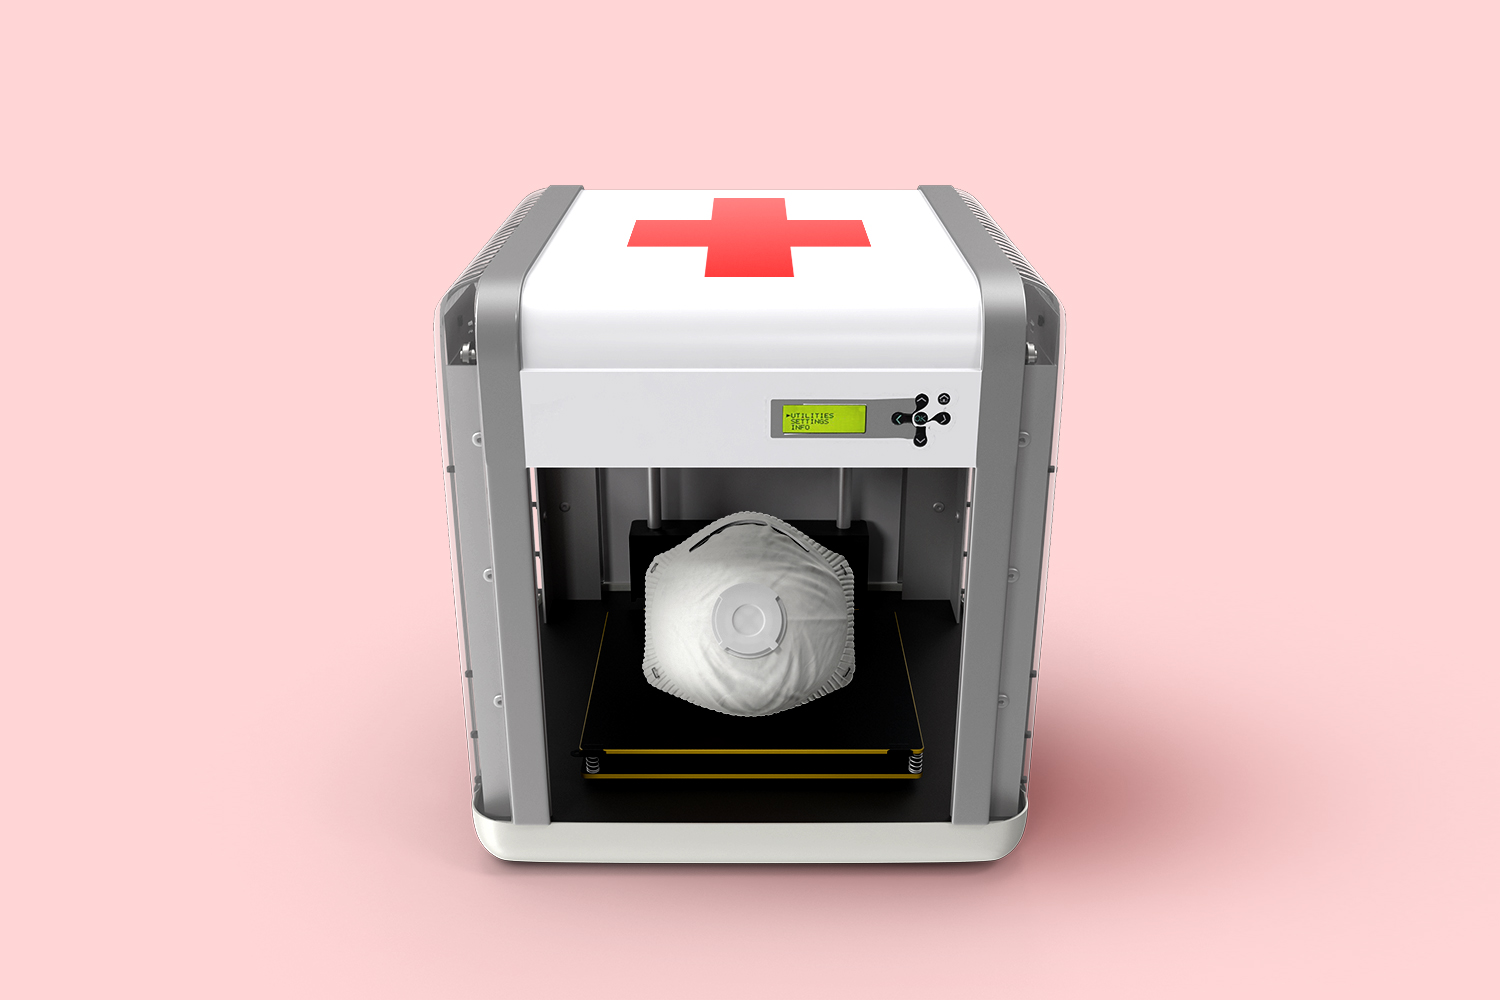 3D printer manufacturing medical equipment, personal protective equipment, and more during coronavirus crisis